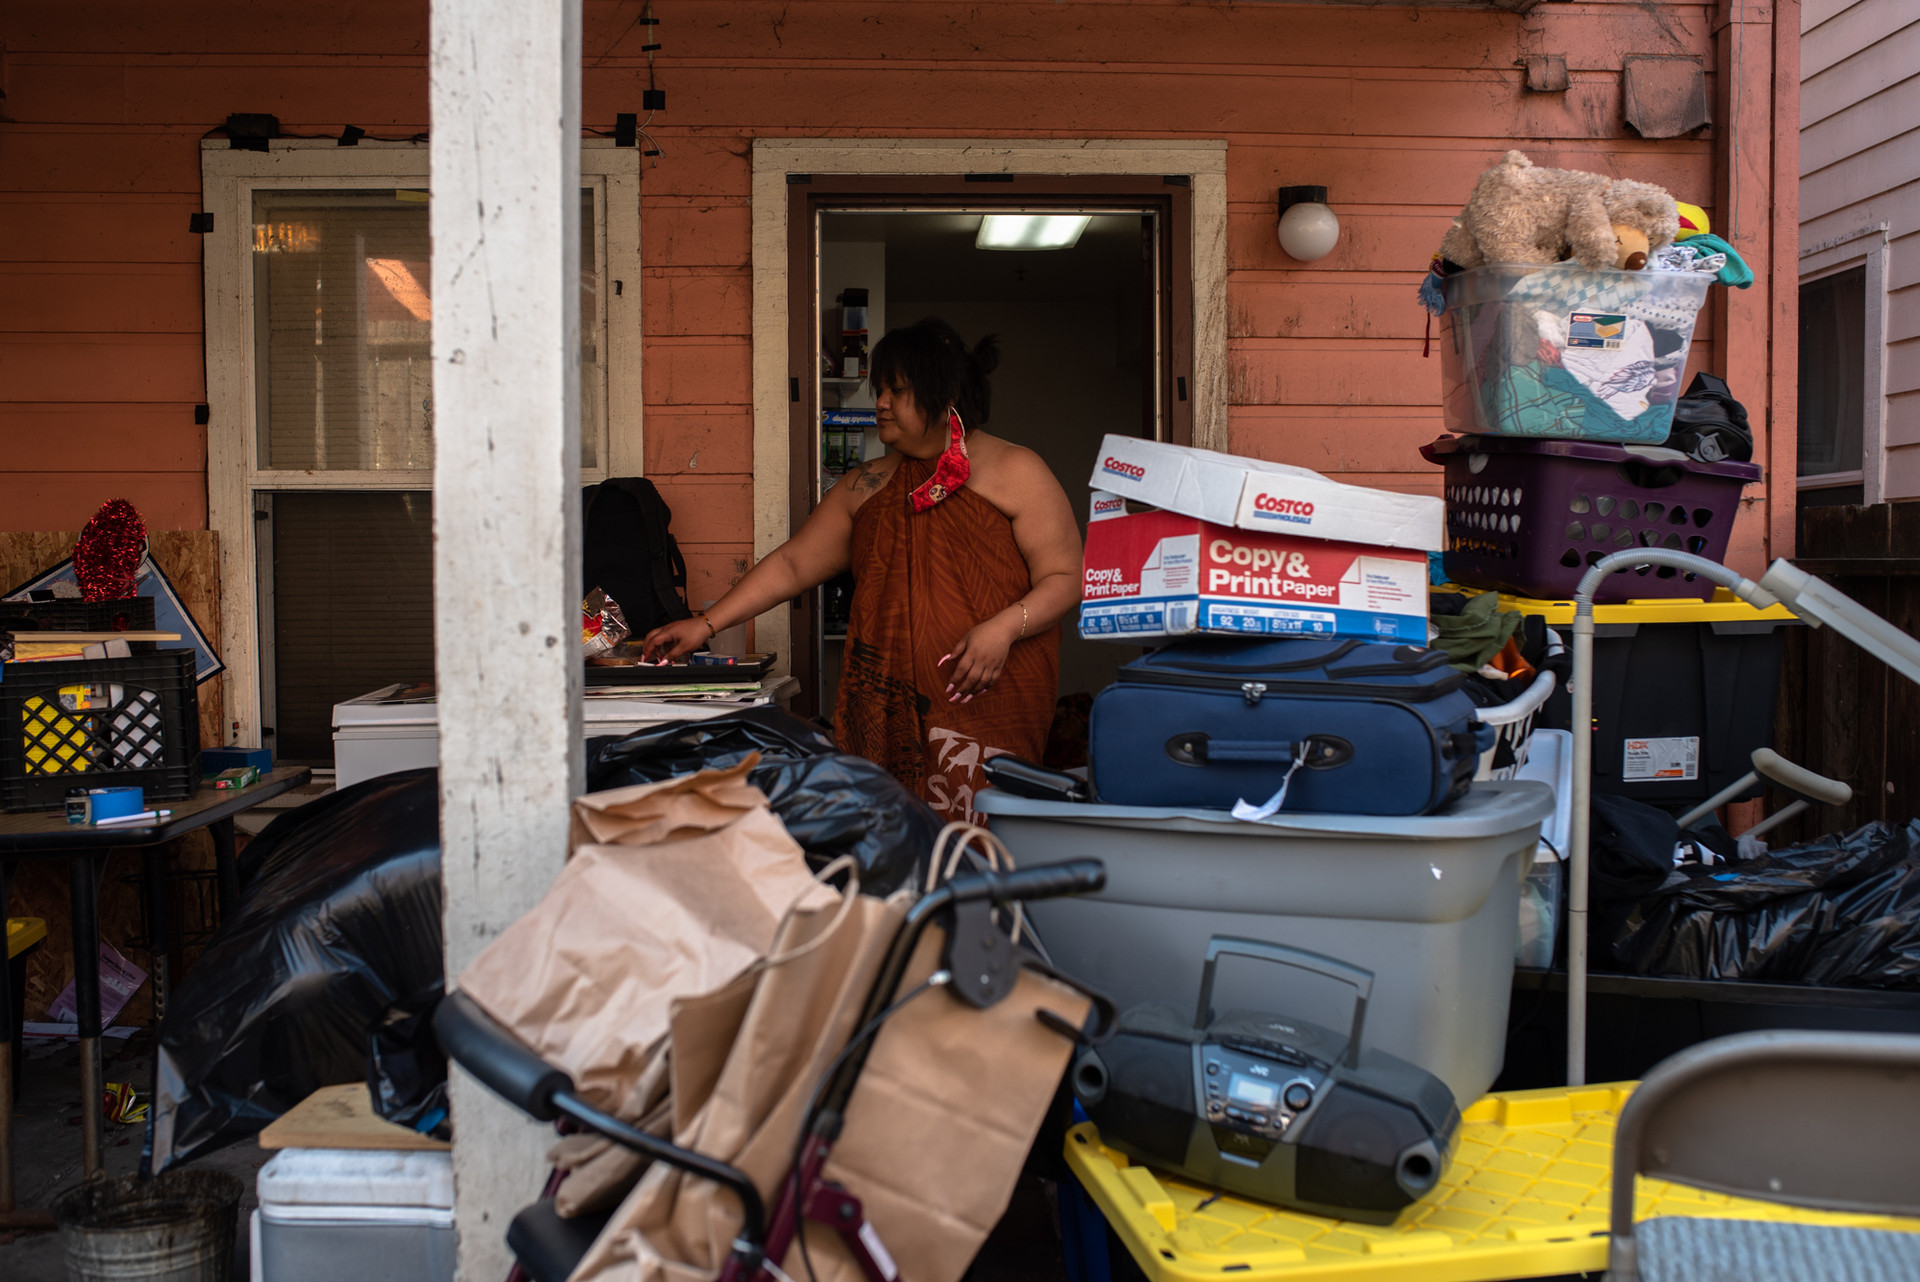 Gaynor's younger sister Jennifer moves all her belongings into the backyard as the family packs everything into boxes. The city recently gave Gaynor's family 7 days notice to vacate for renovation.